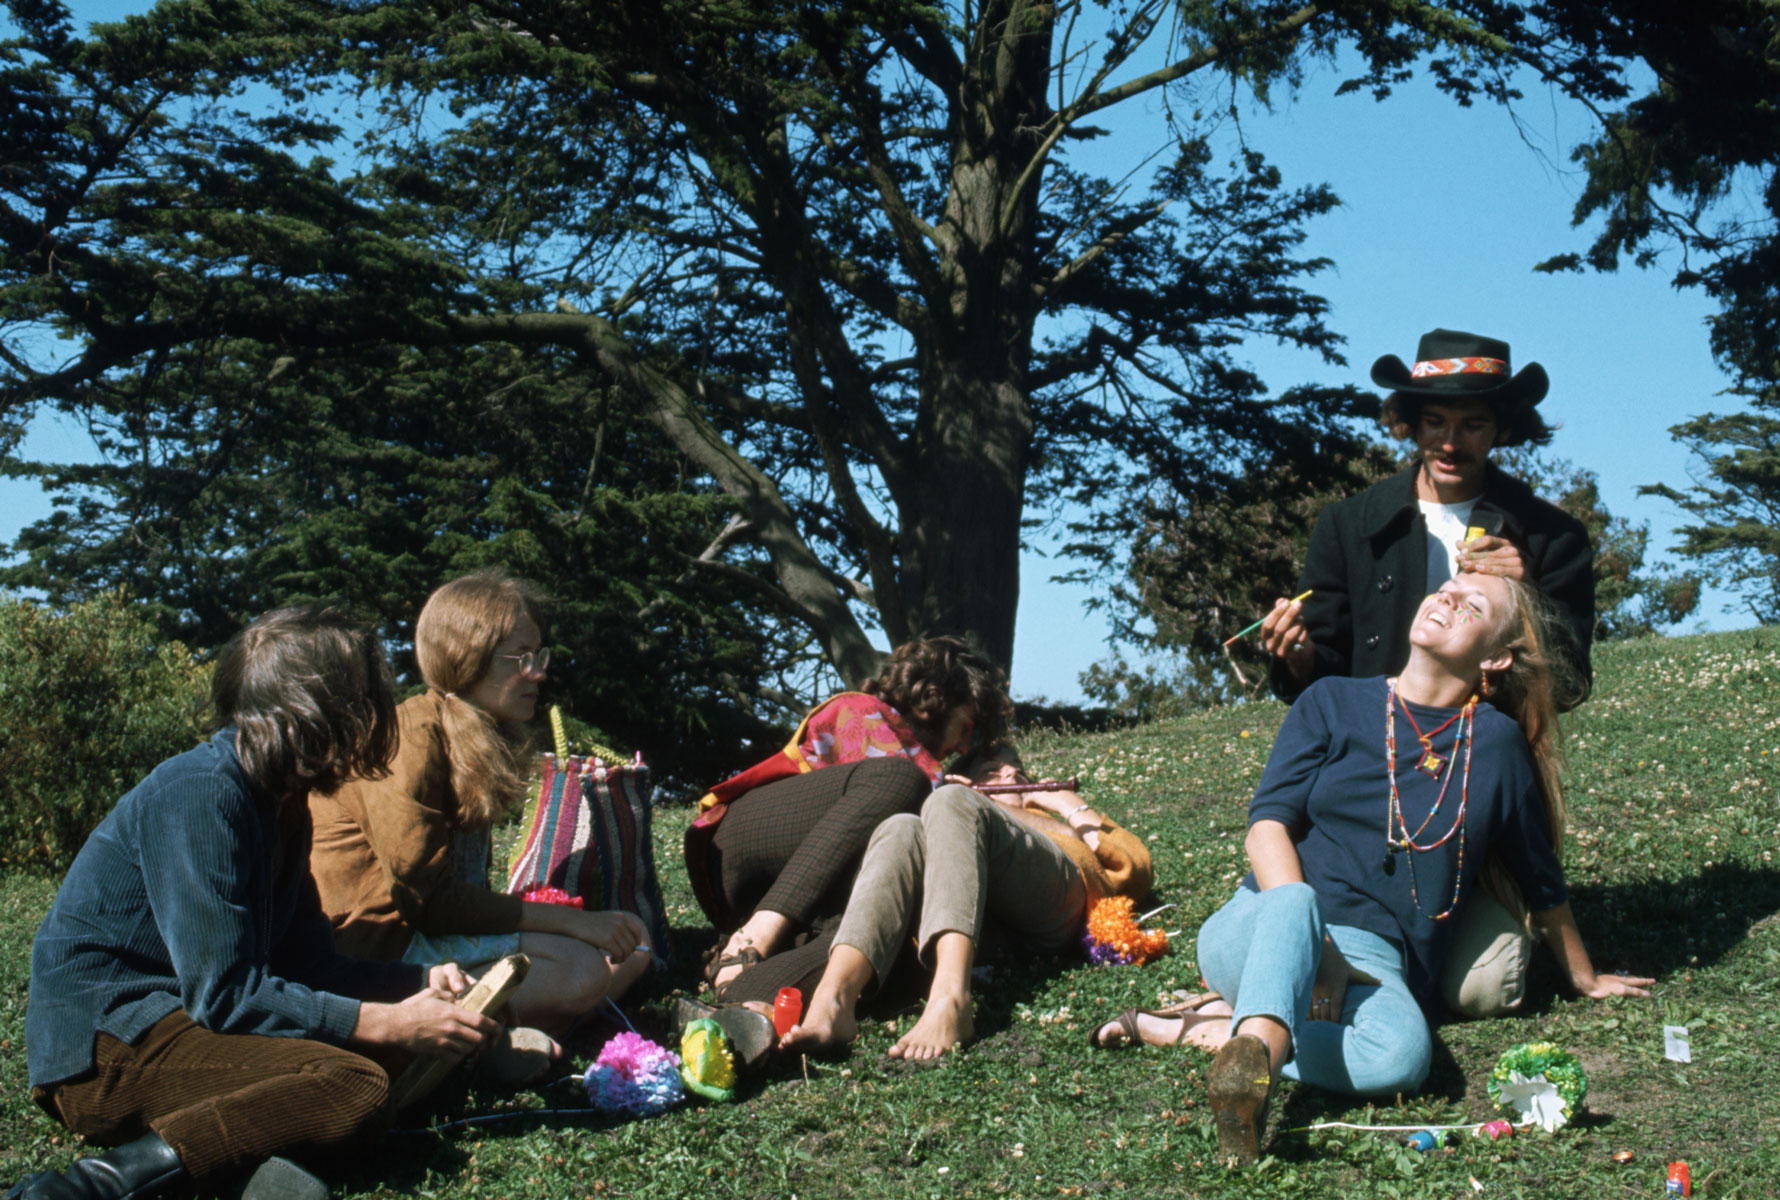 A man paints a woman's face during the Summer of Love in Haight Ashbury, San Francisco, California. 1967. Фото: Ted Streshinsky/CORBIS/Corbis via Getty Images